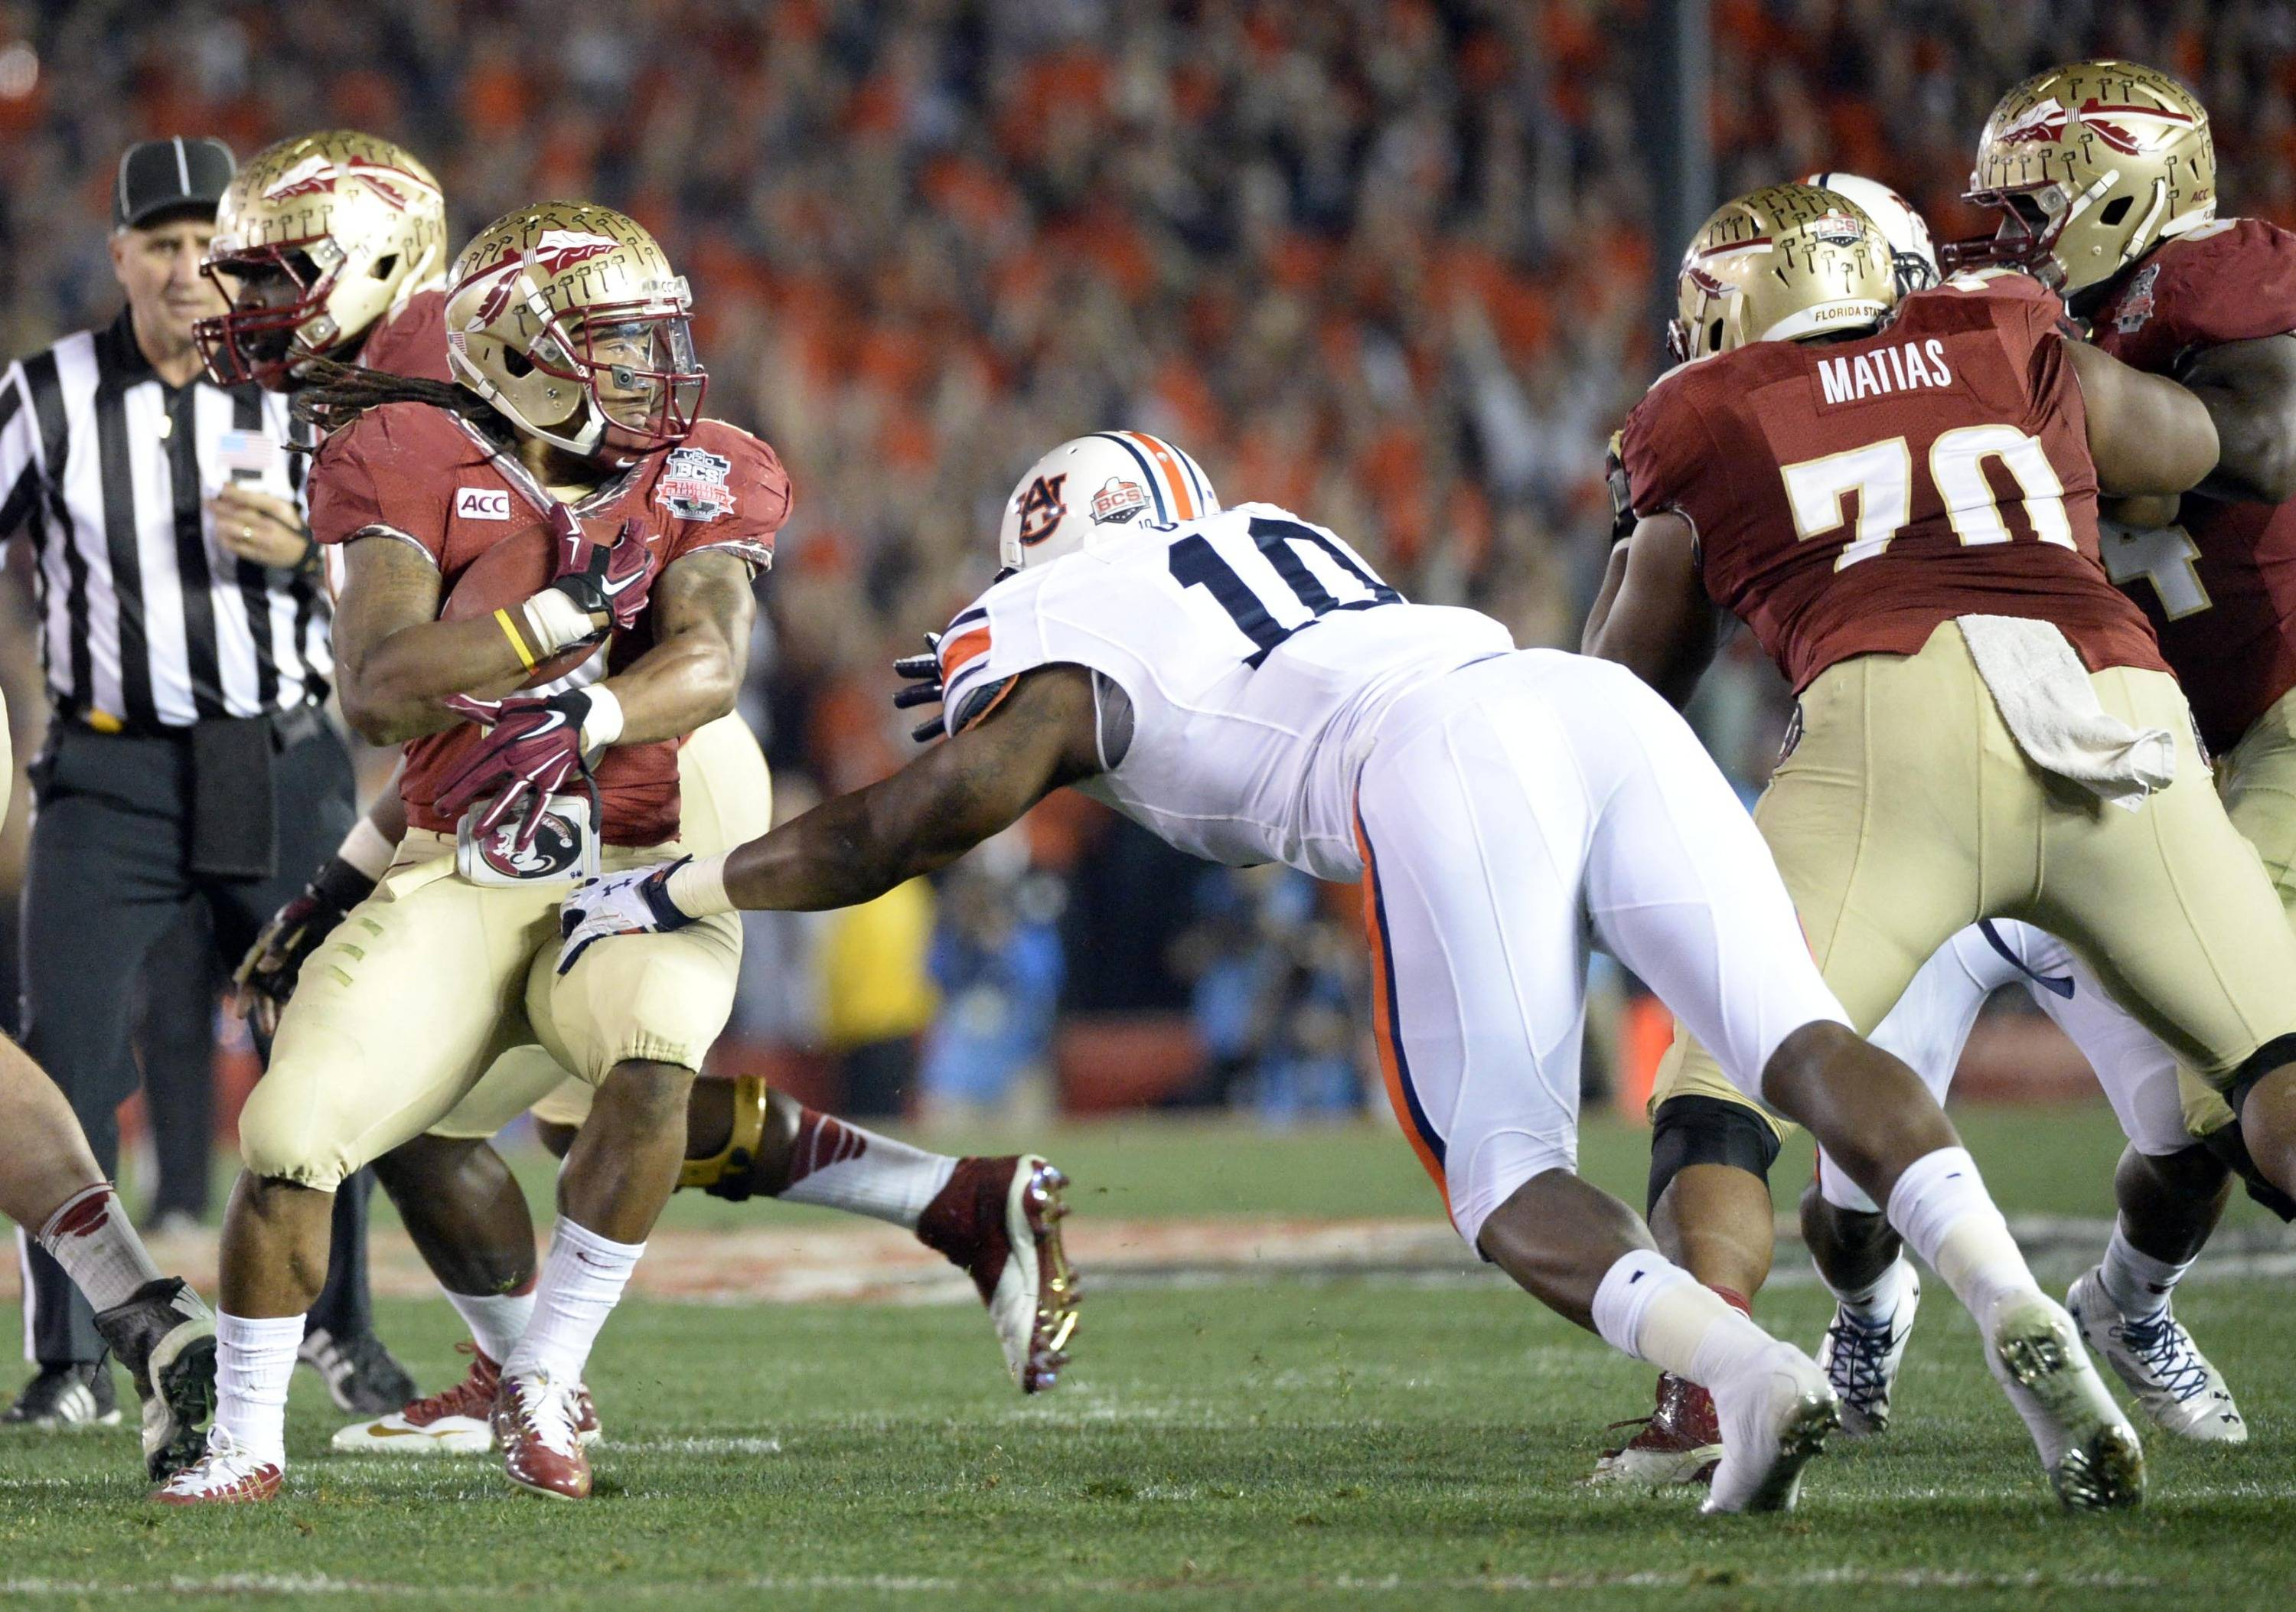 Jan 6, 2014; Pasadena, CA, USA; Auburn Tigers defensive end LaDarius Owens (10) tackles Florida State Seminoles running back Devonta Freeman (8) during the first half of the 2014 BCS National Championship game at the Rose Bowl.  Mandatory Credit: Richard Mackson-USA TODAY Sports